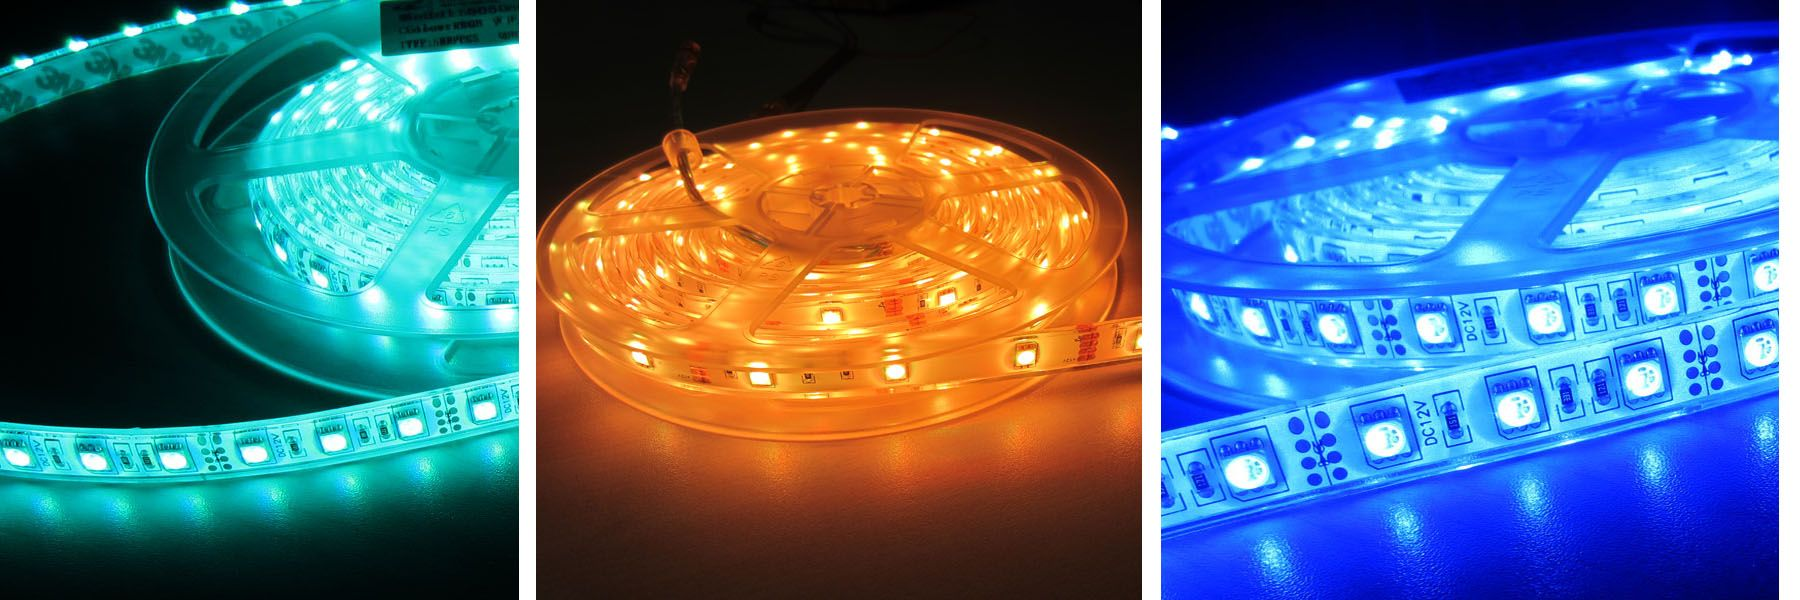 medium resolution of dmx 2 wires small led thin rope light led flexible neon lamp manufacturer from shenzhen china aa1b2f01 5050 led strip light oem product